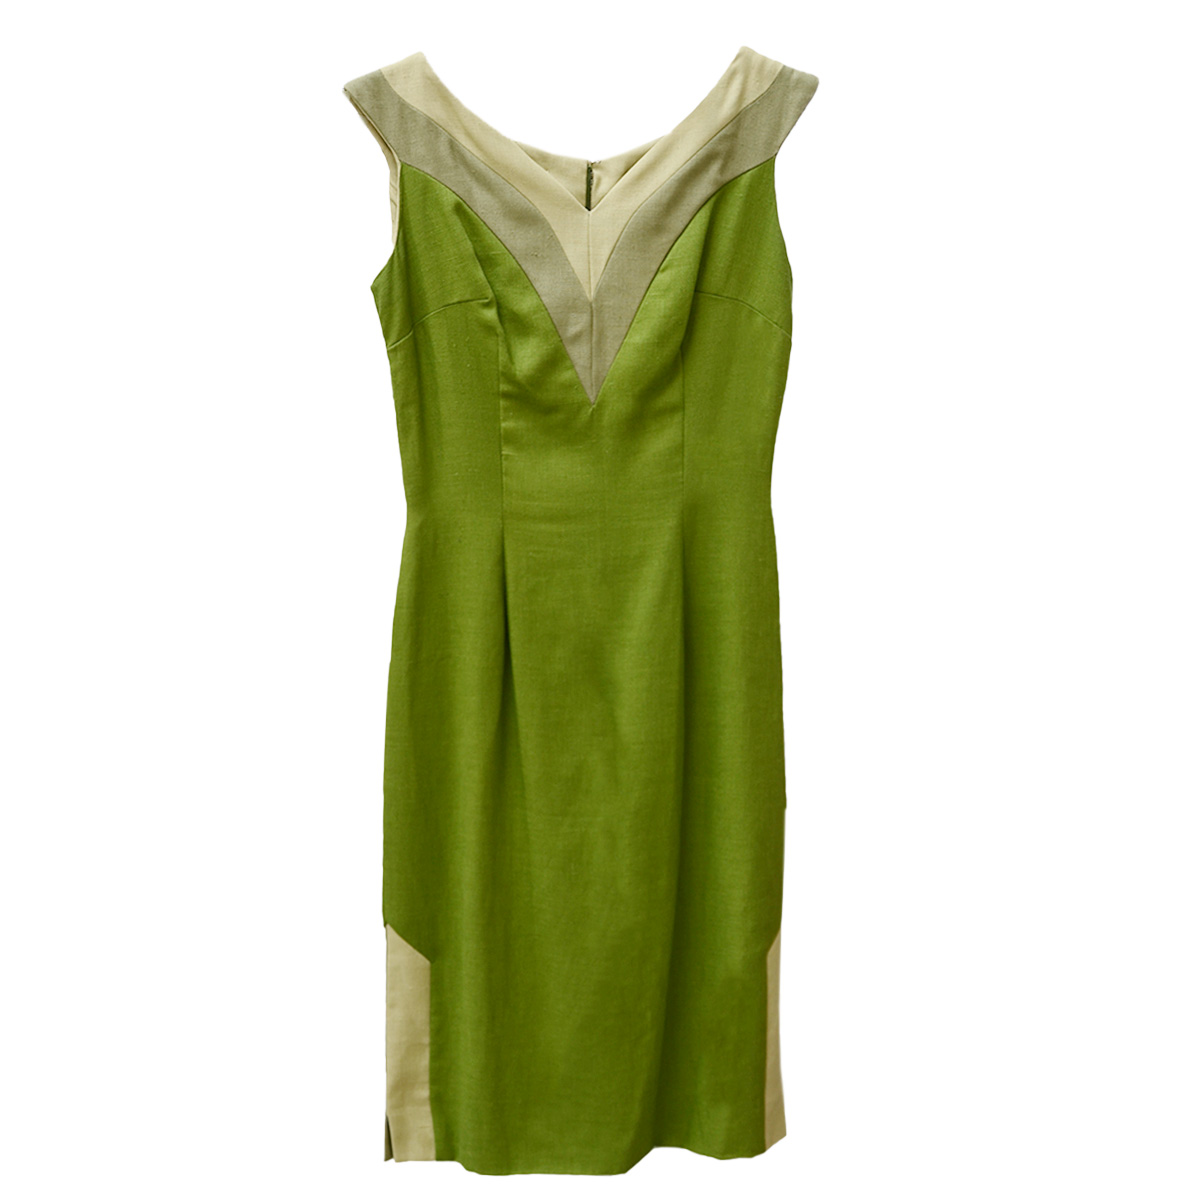 Short sleeve Green linen dress